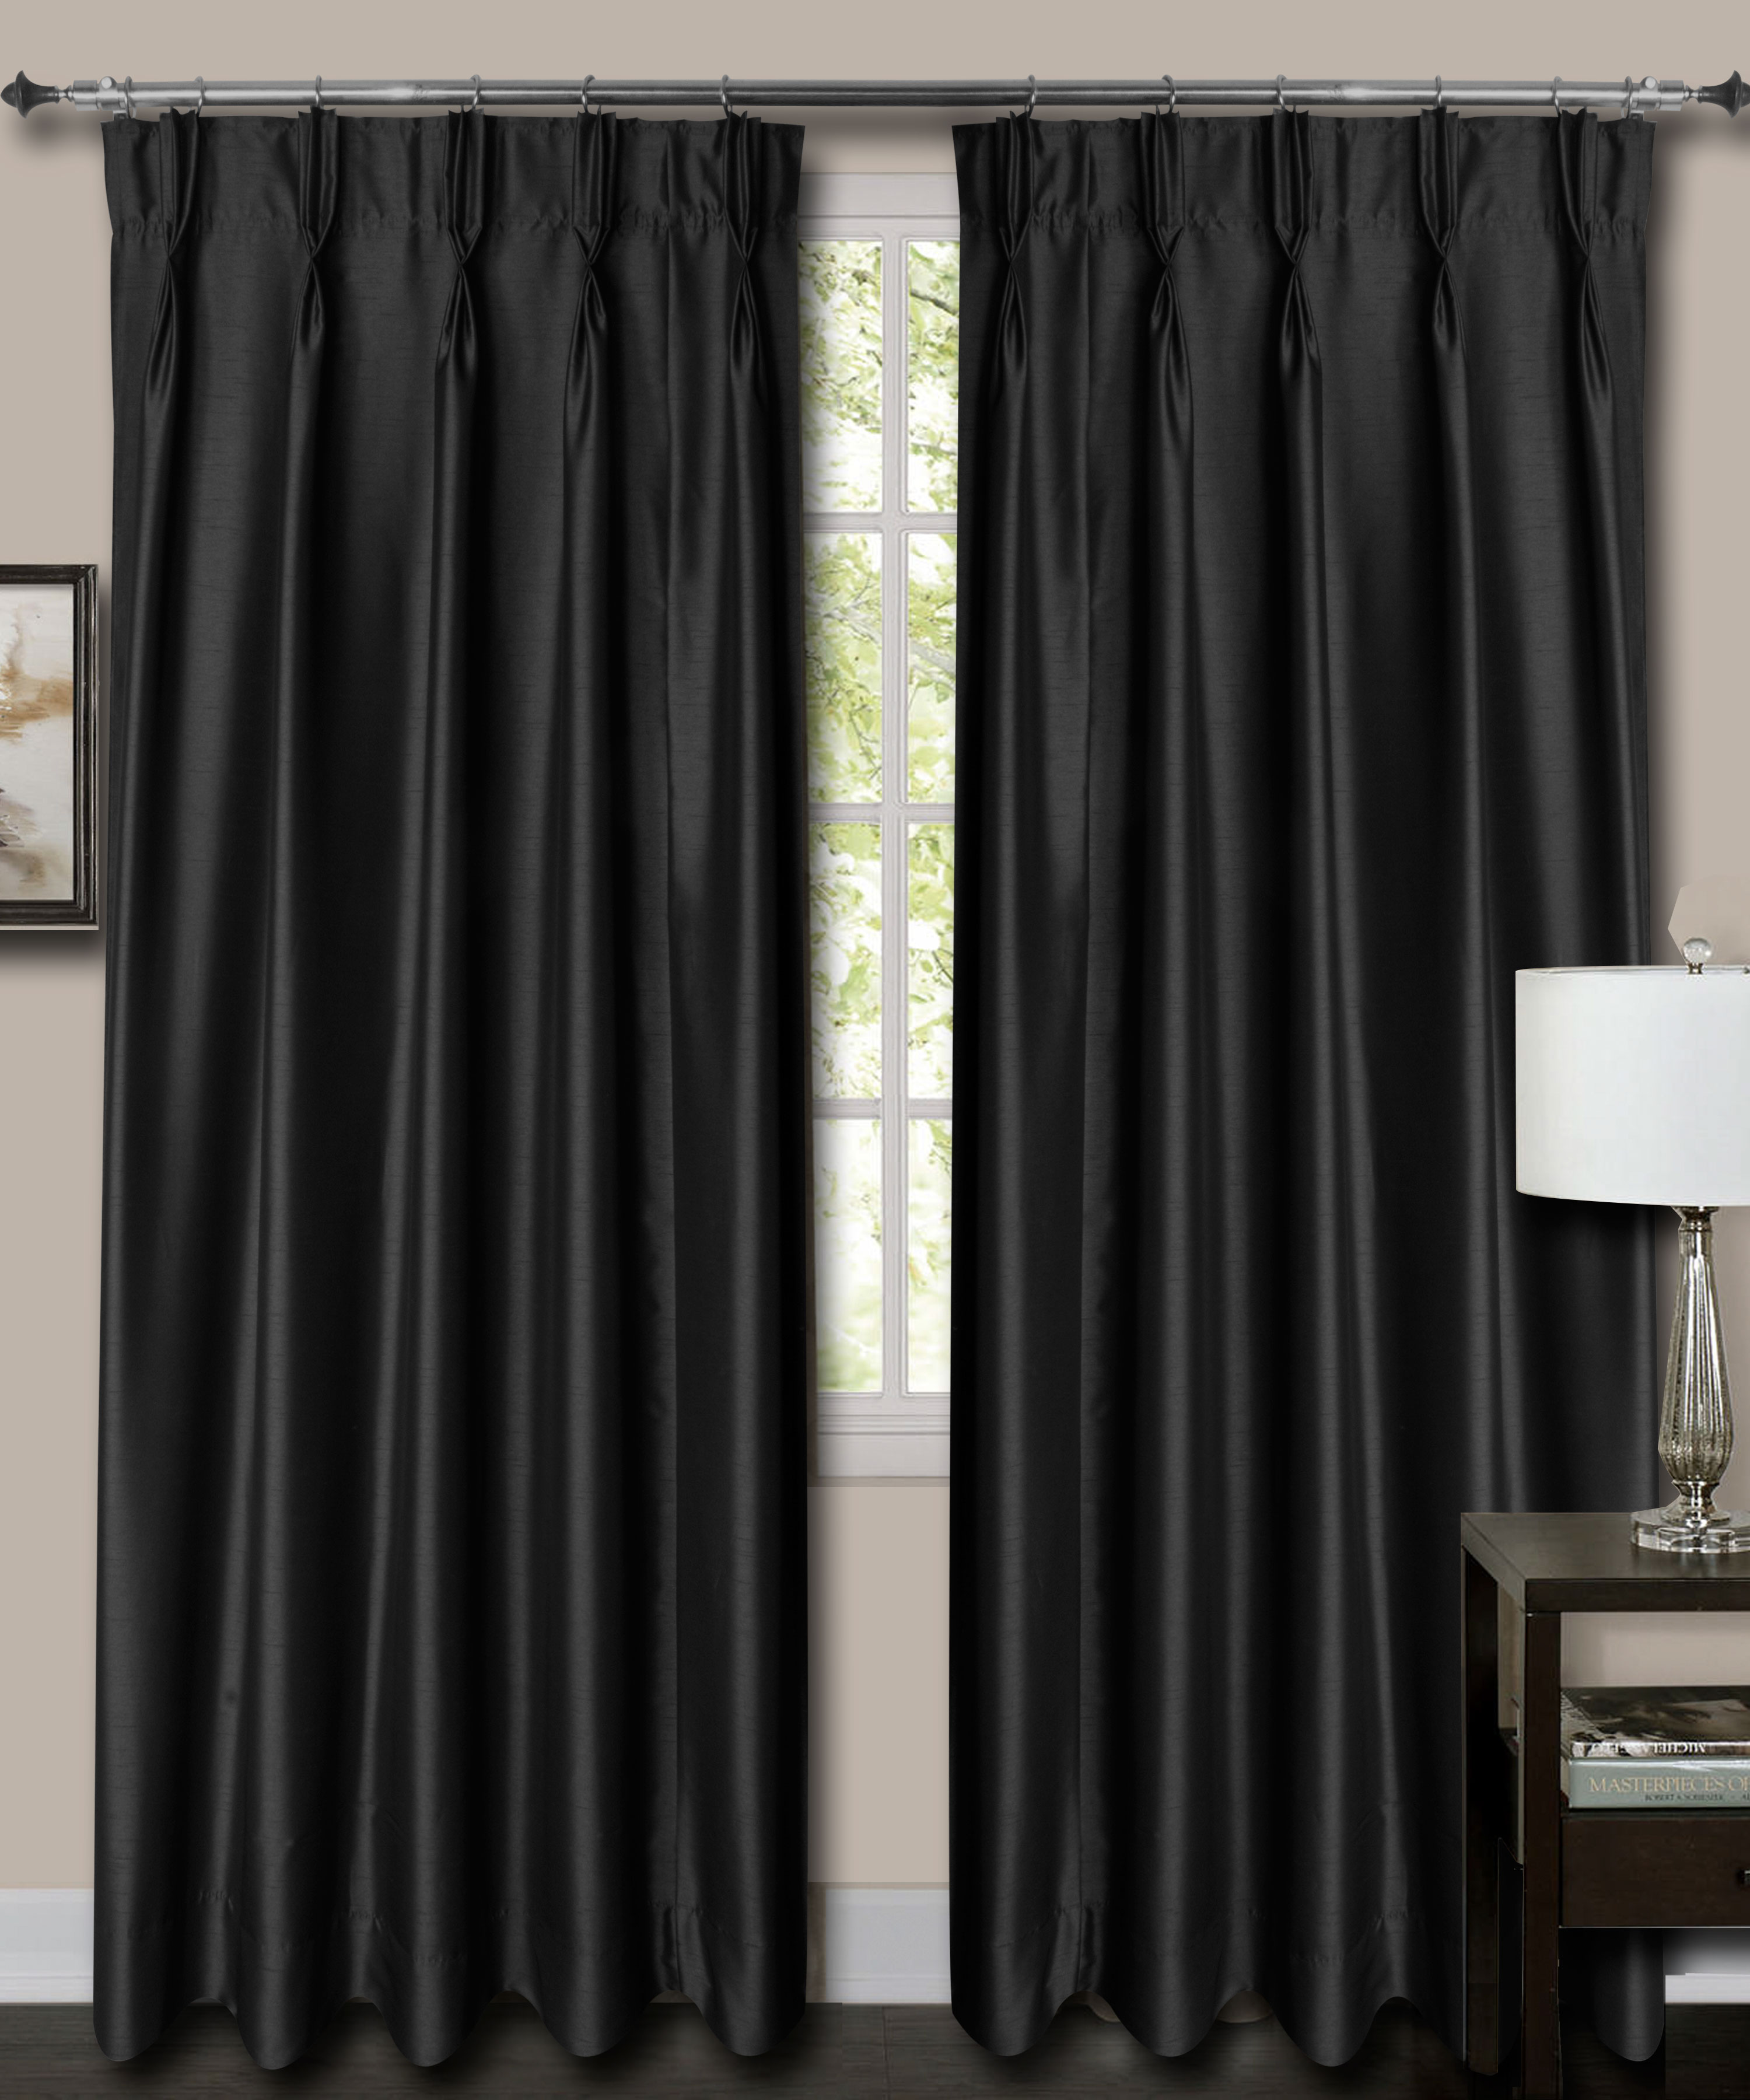 """French Pleat Top Black Faux Silk Dupioni Curtains. (24"""" Wide, 9 Feet Long, Without Lining)"""